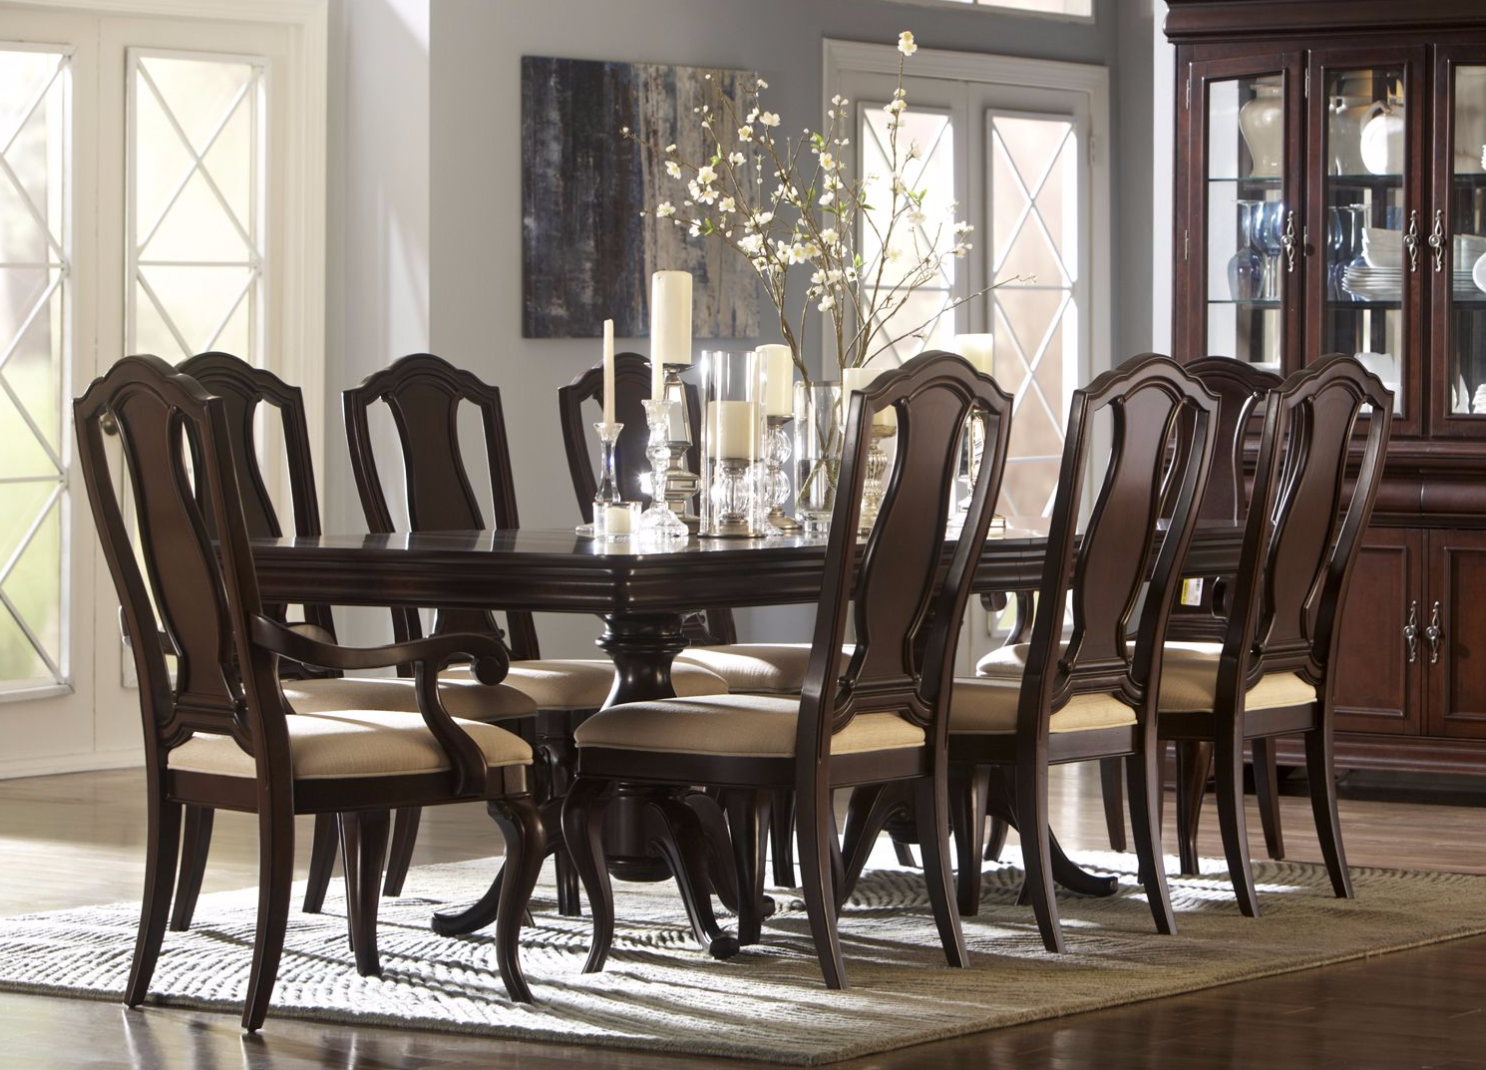 Dining Room Table Chairs Haverty S Orleans Dining Room Decor